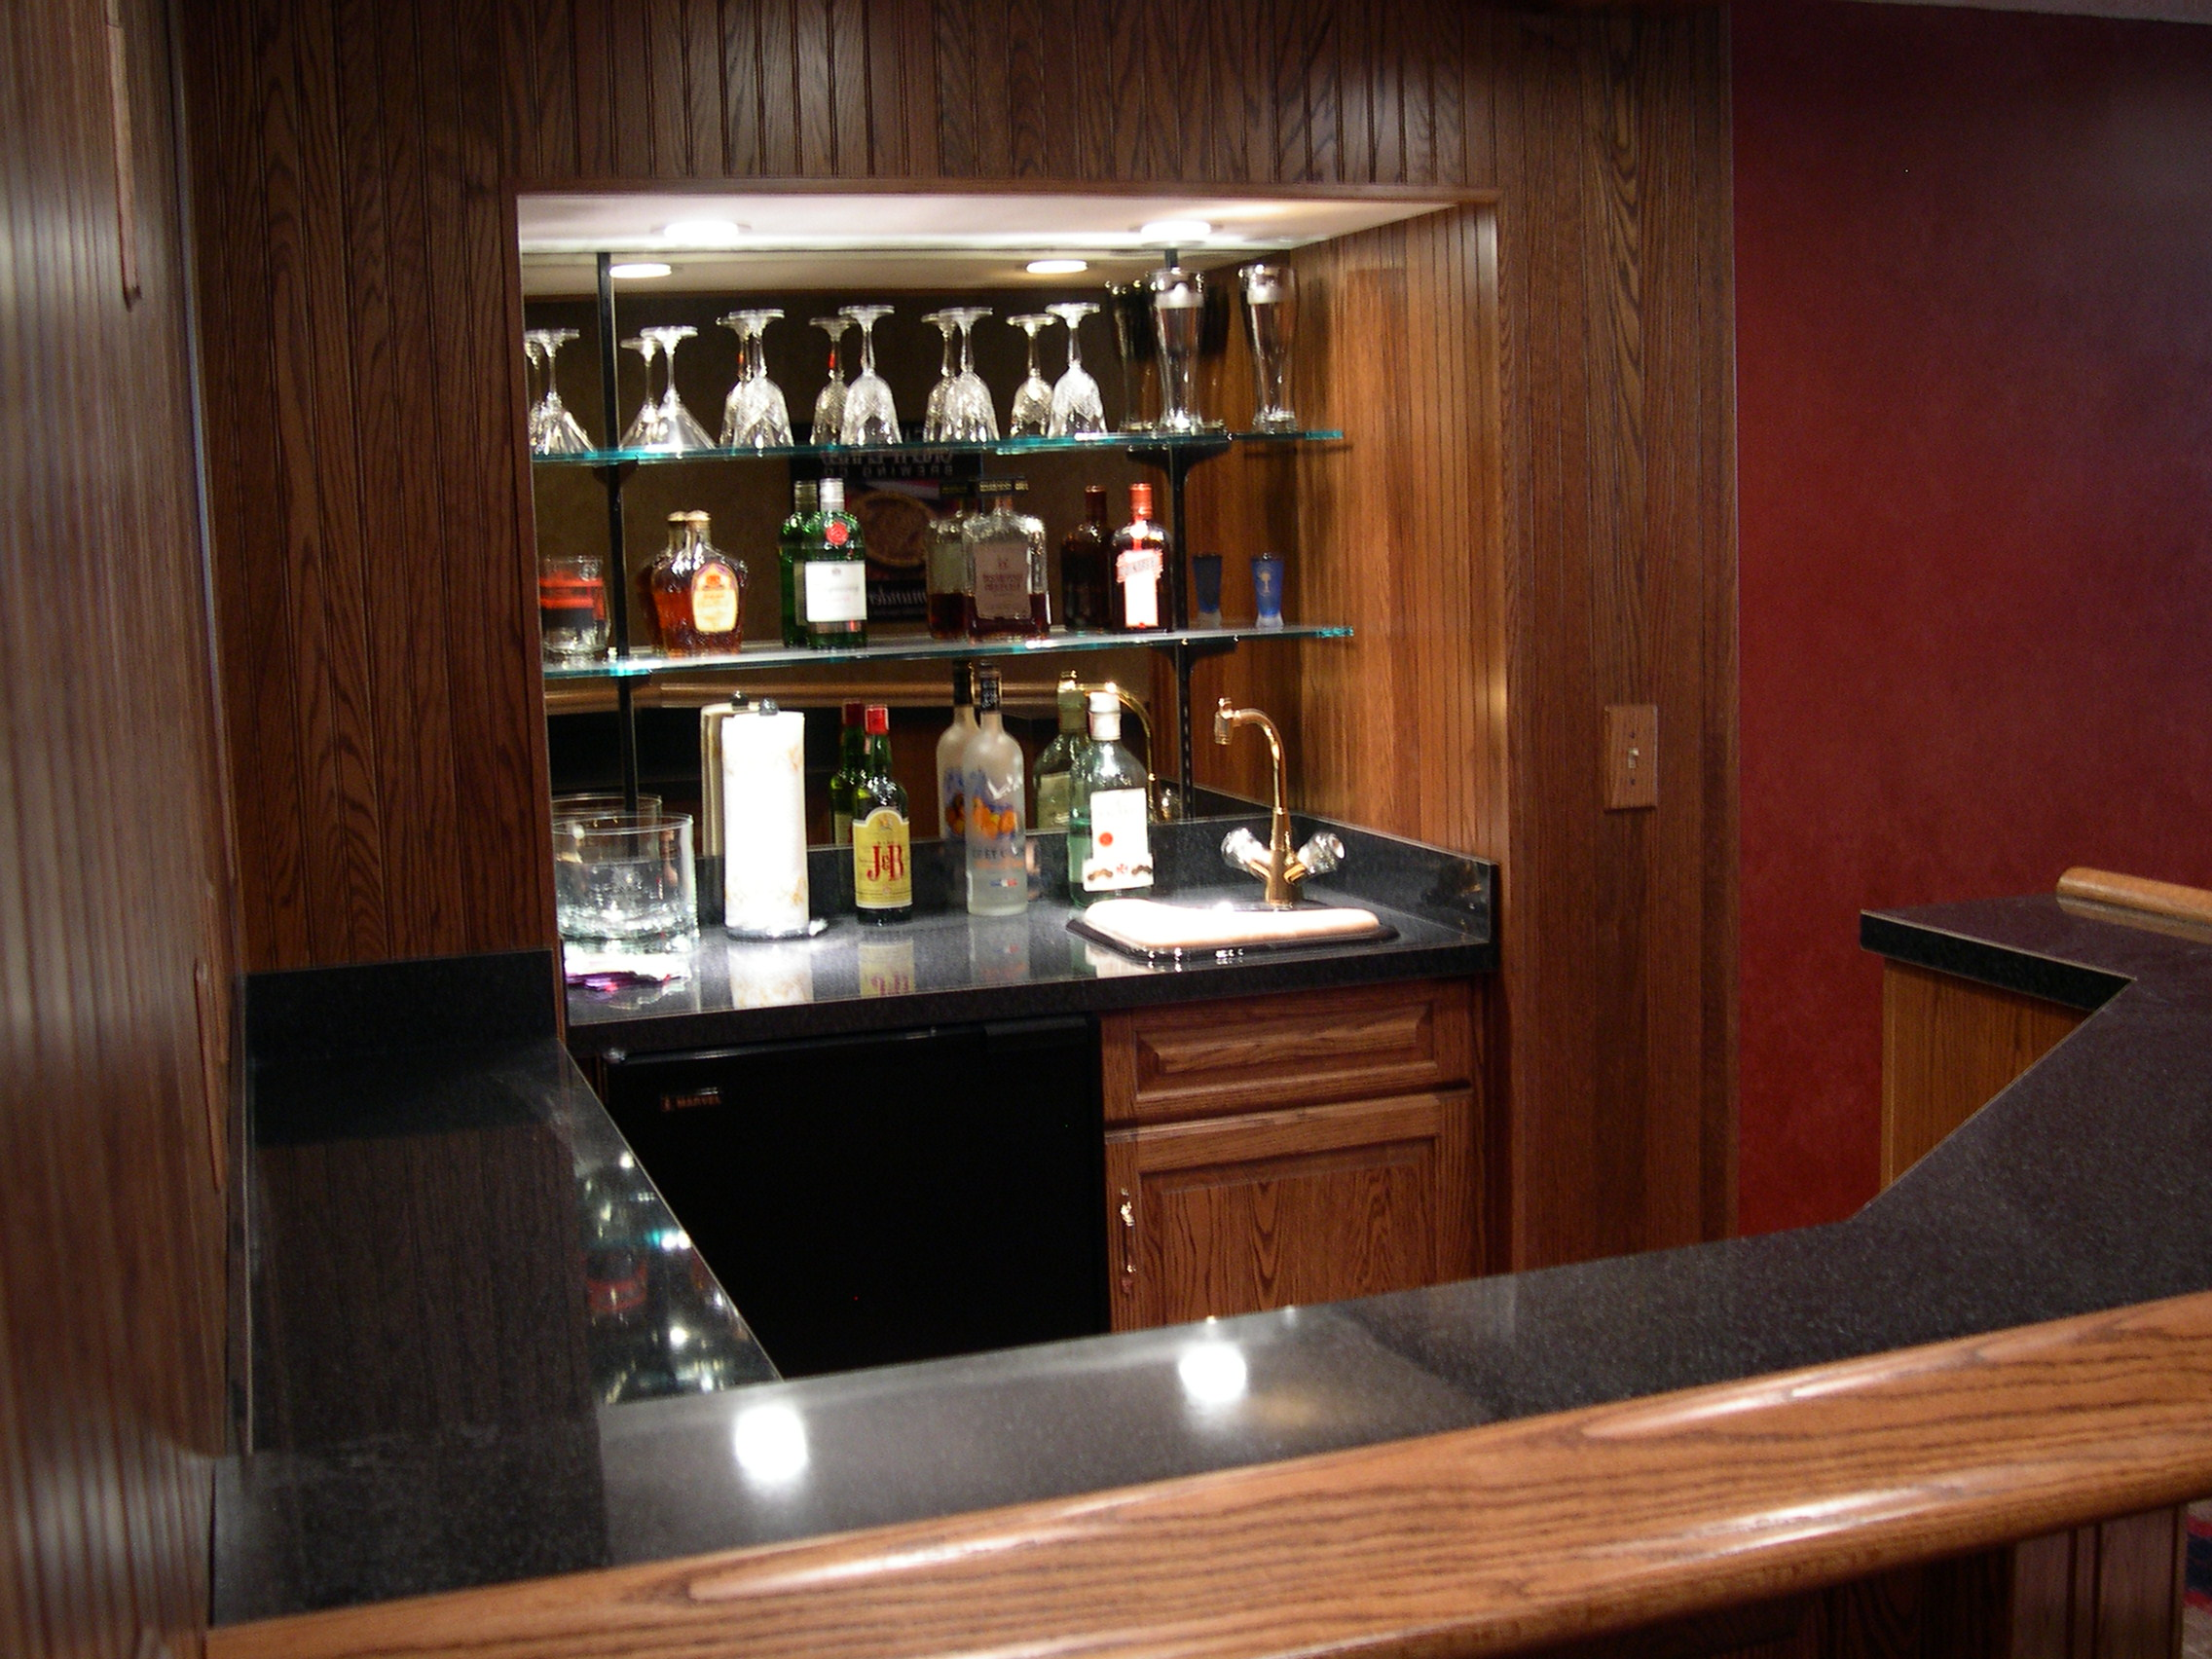 Coolest Diy Home Bar Ideas - Elly\'s DIY Blog